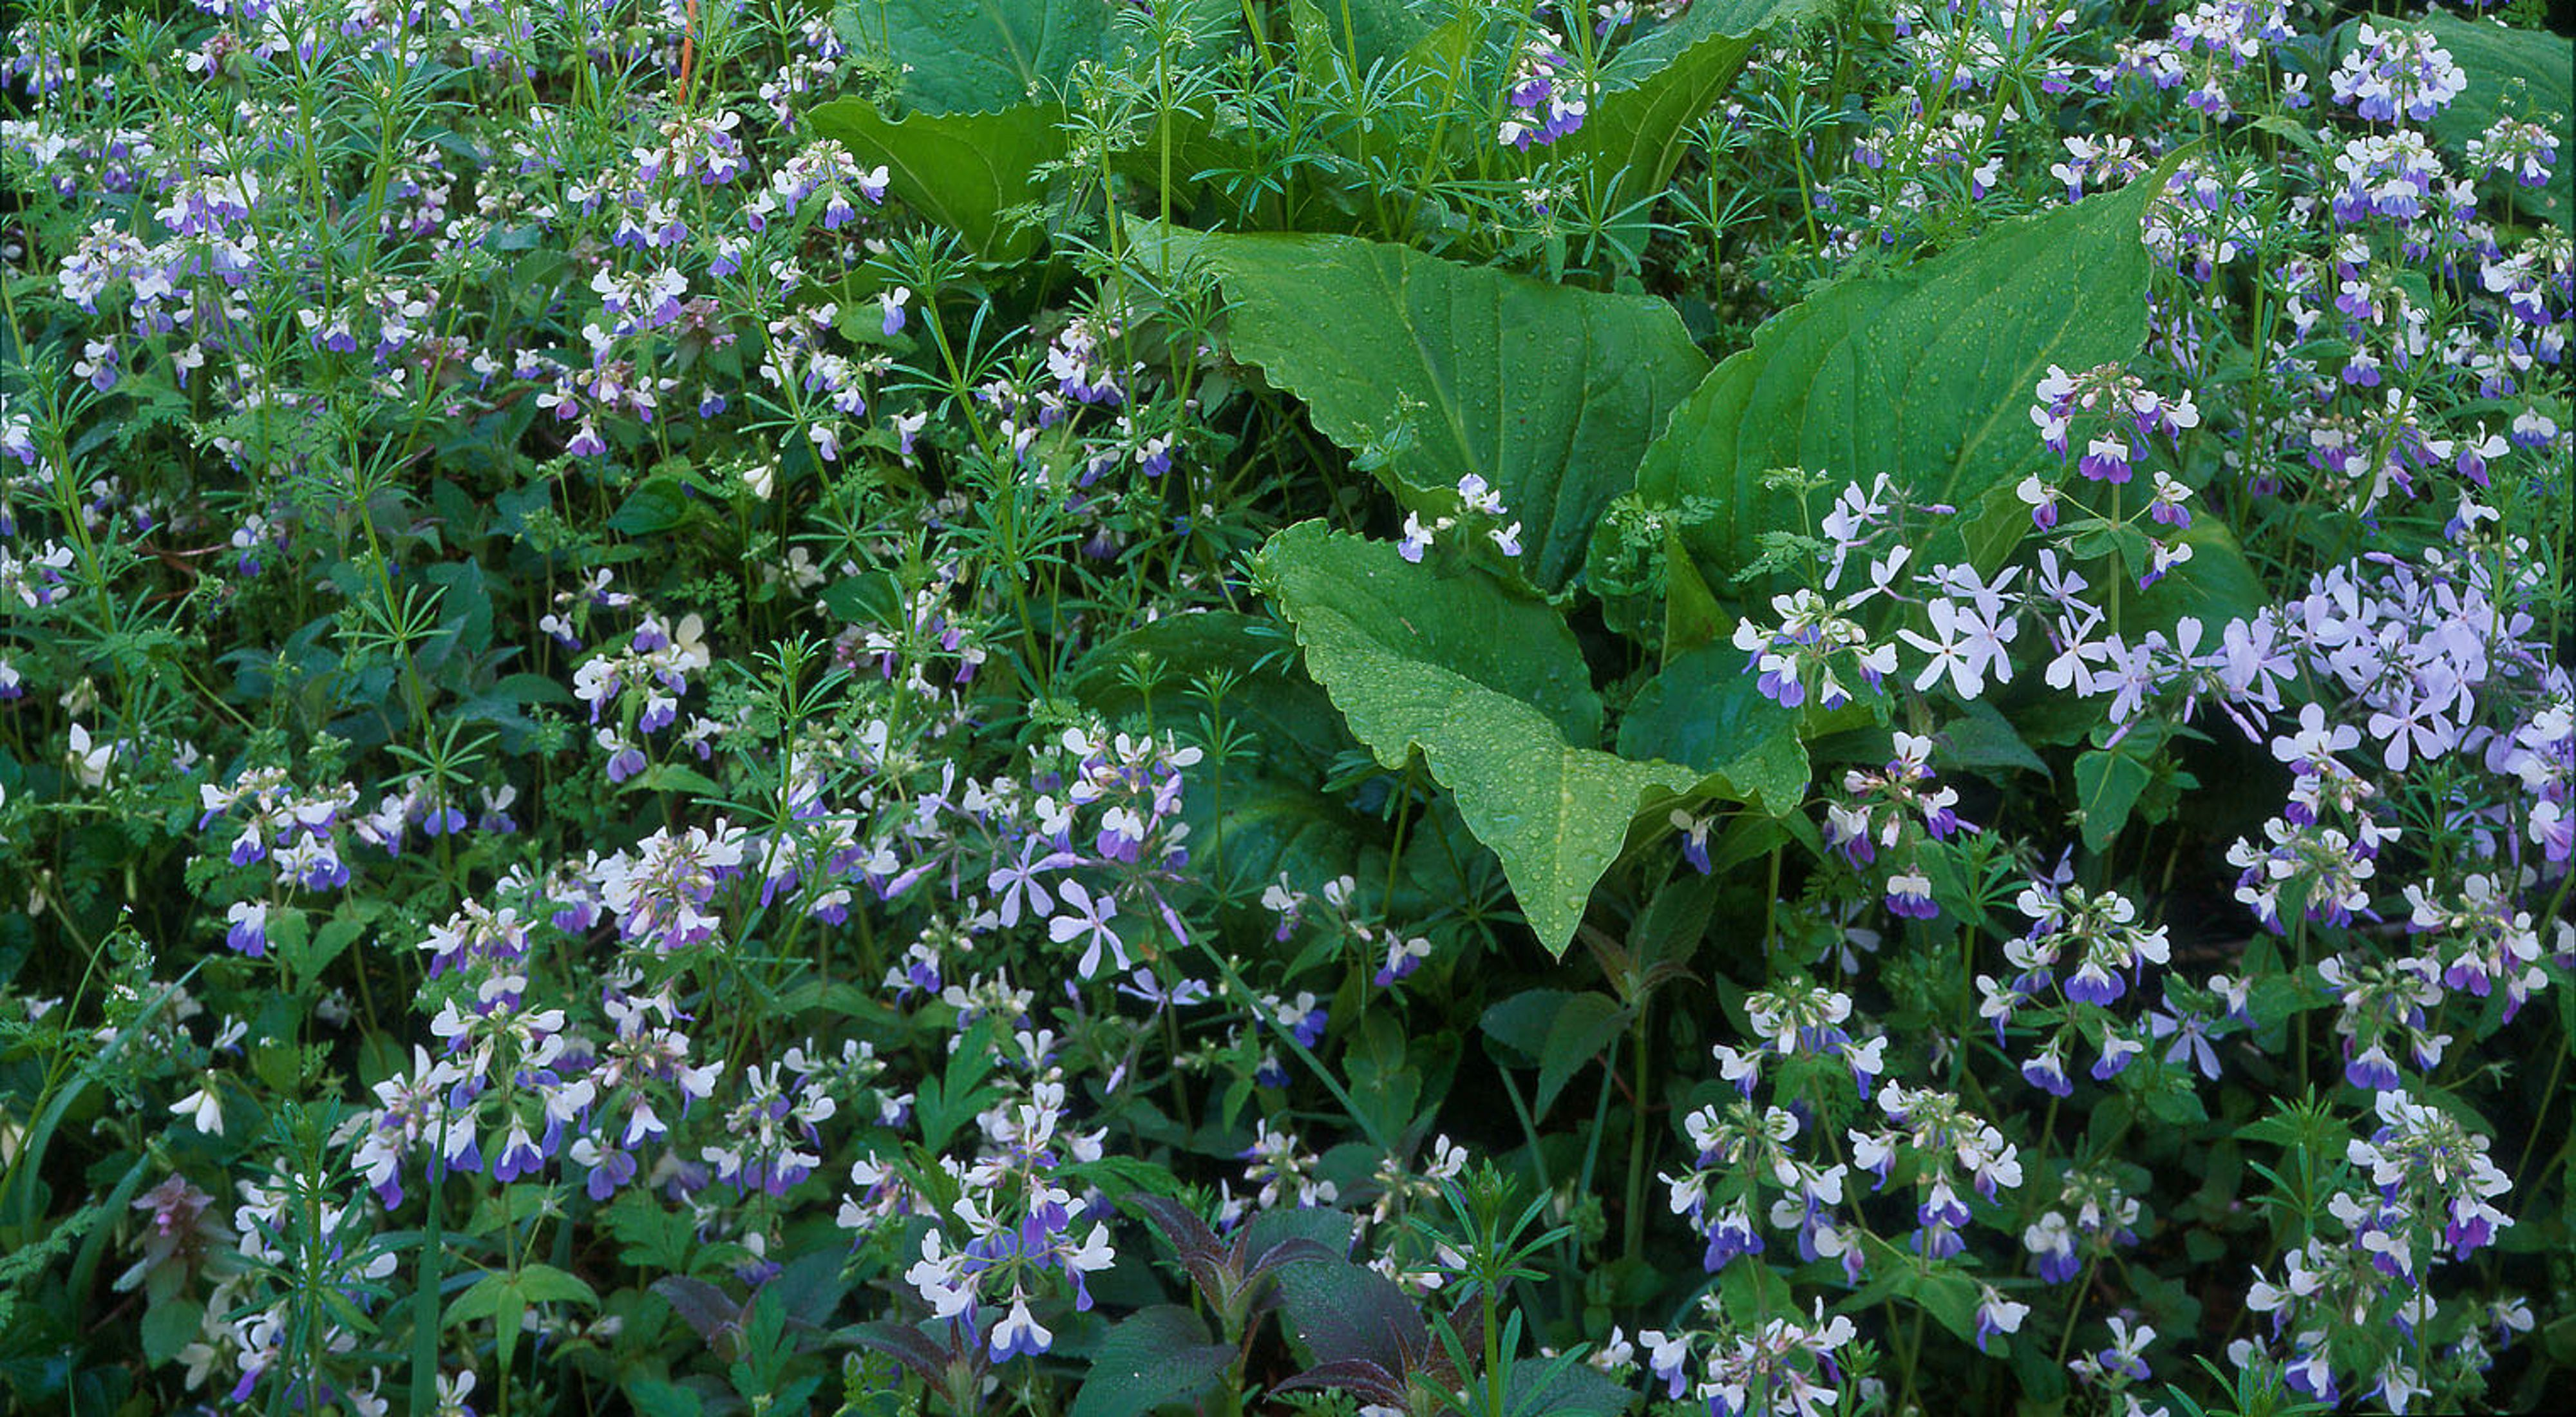 A sea of bluish flowers interrupted by large-leafed plants on forest floor.